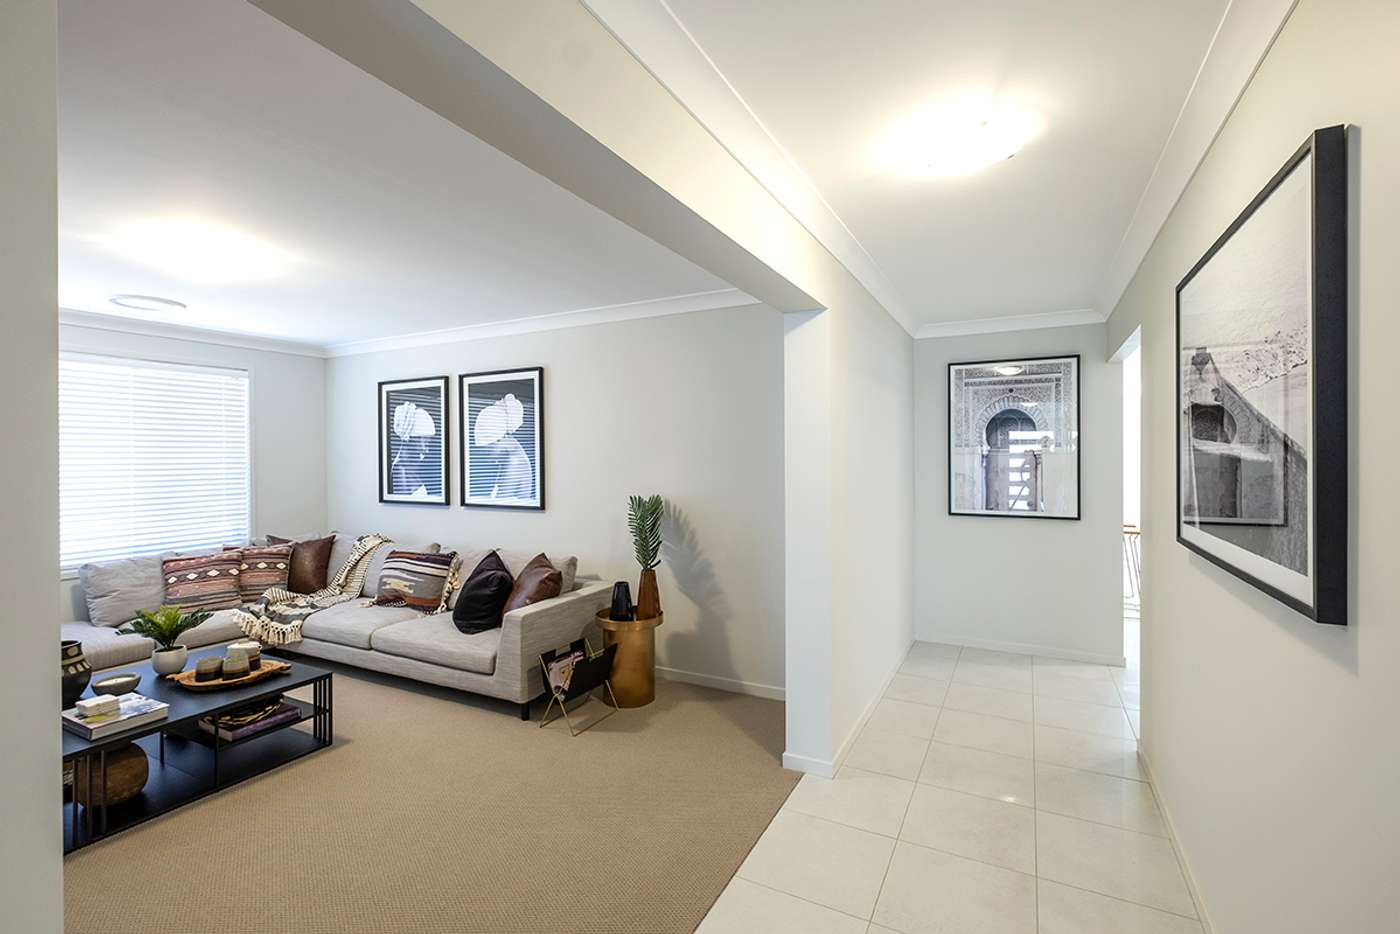 Sixth view of Homely house listing, Lot 133 Tiger Street, Silverdale NSW 2752